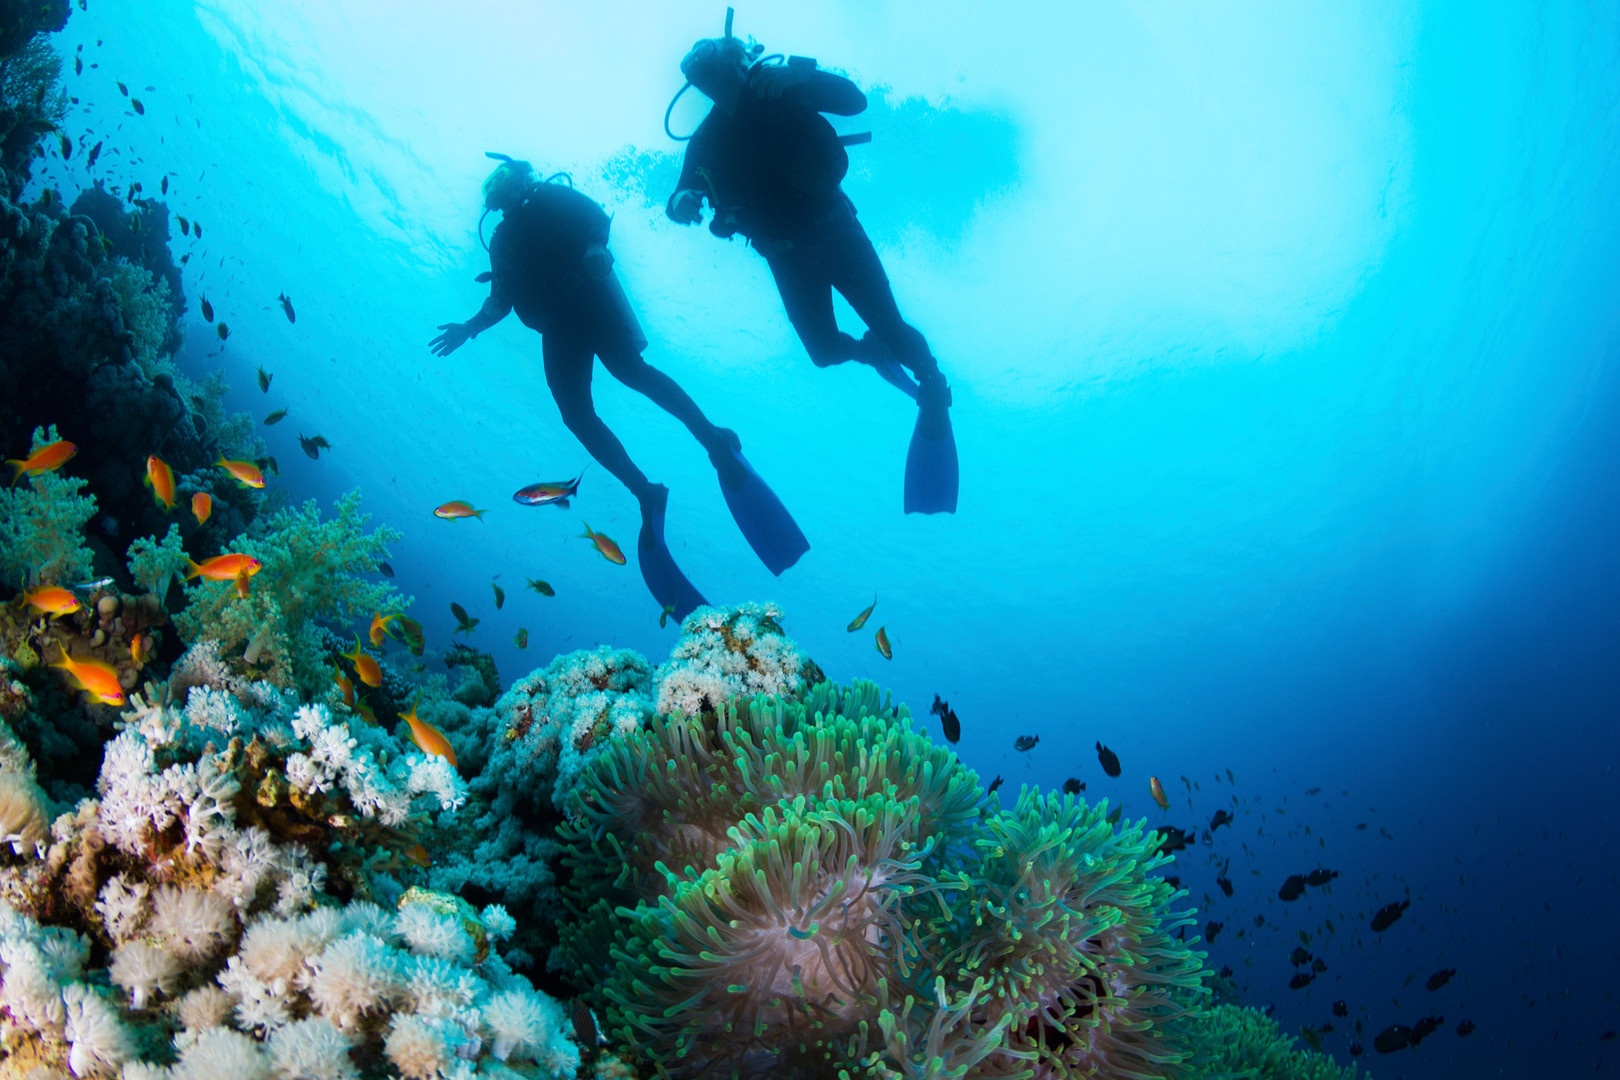 Divers and Corals